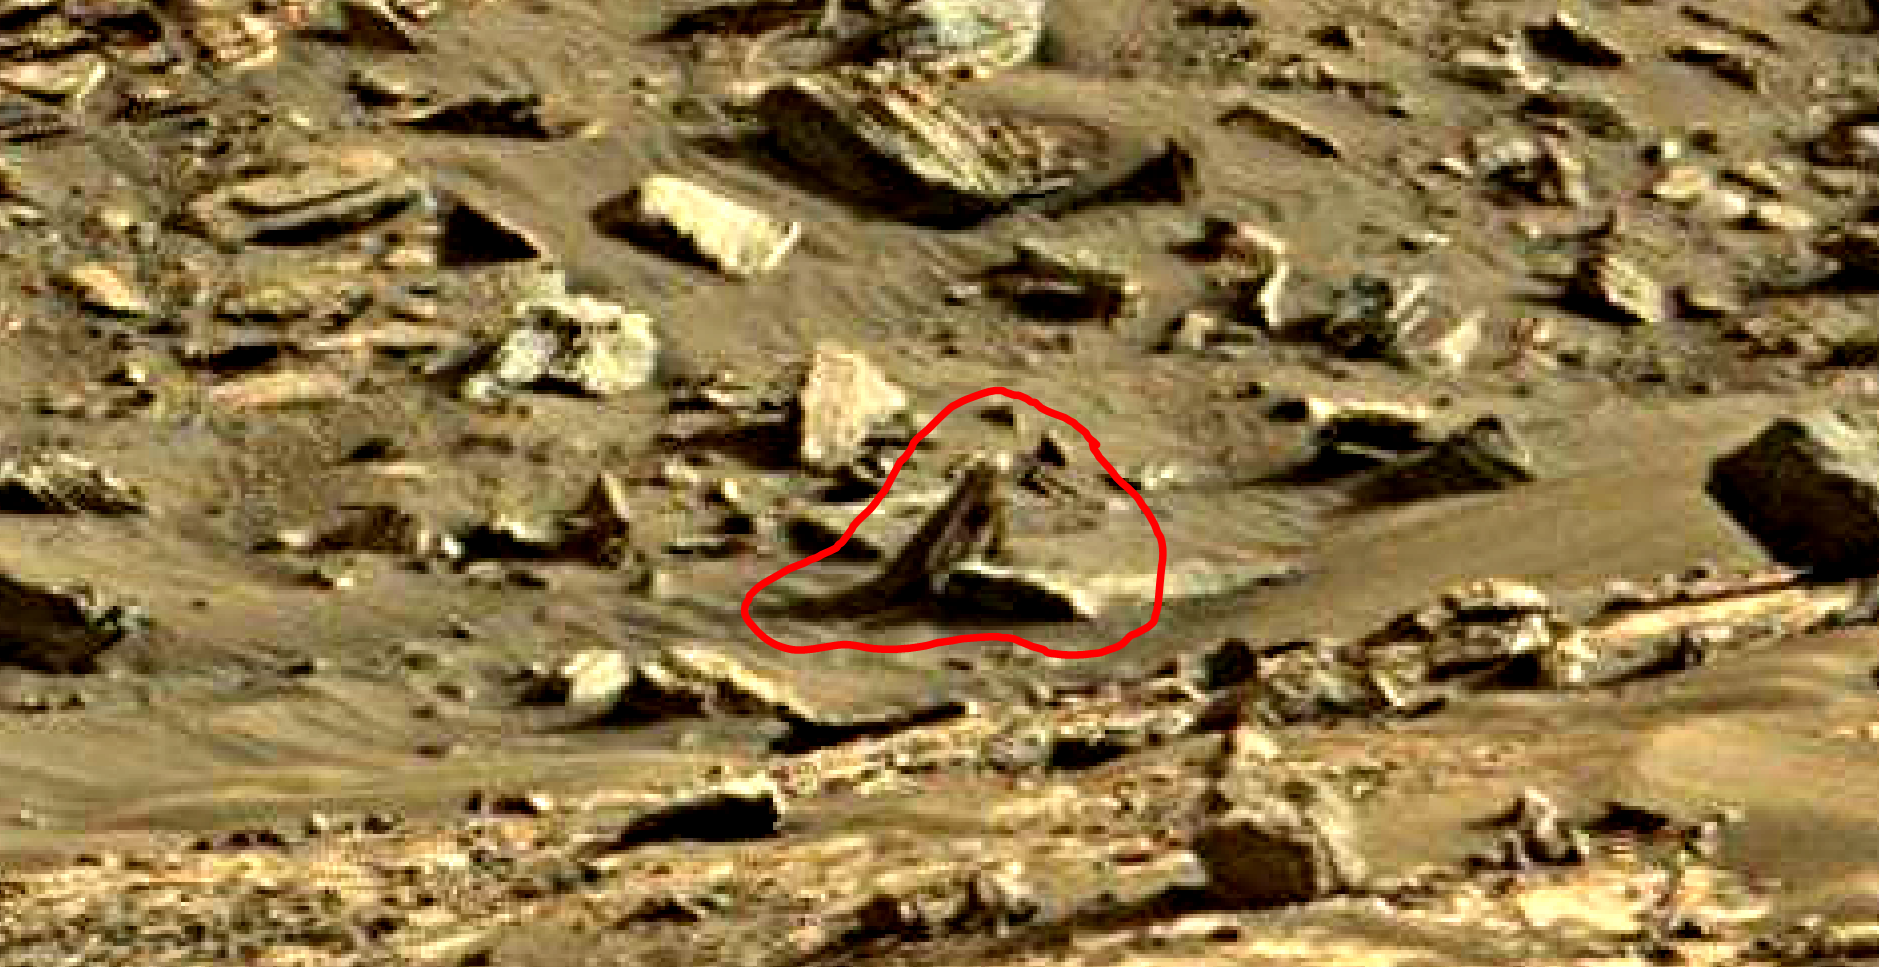 mars sol 1419 anomaly artifacts 18 was life on mars